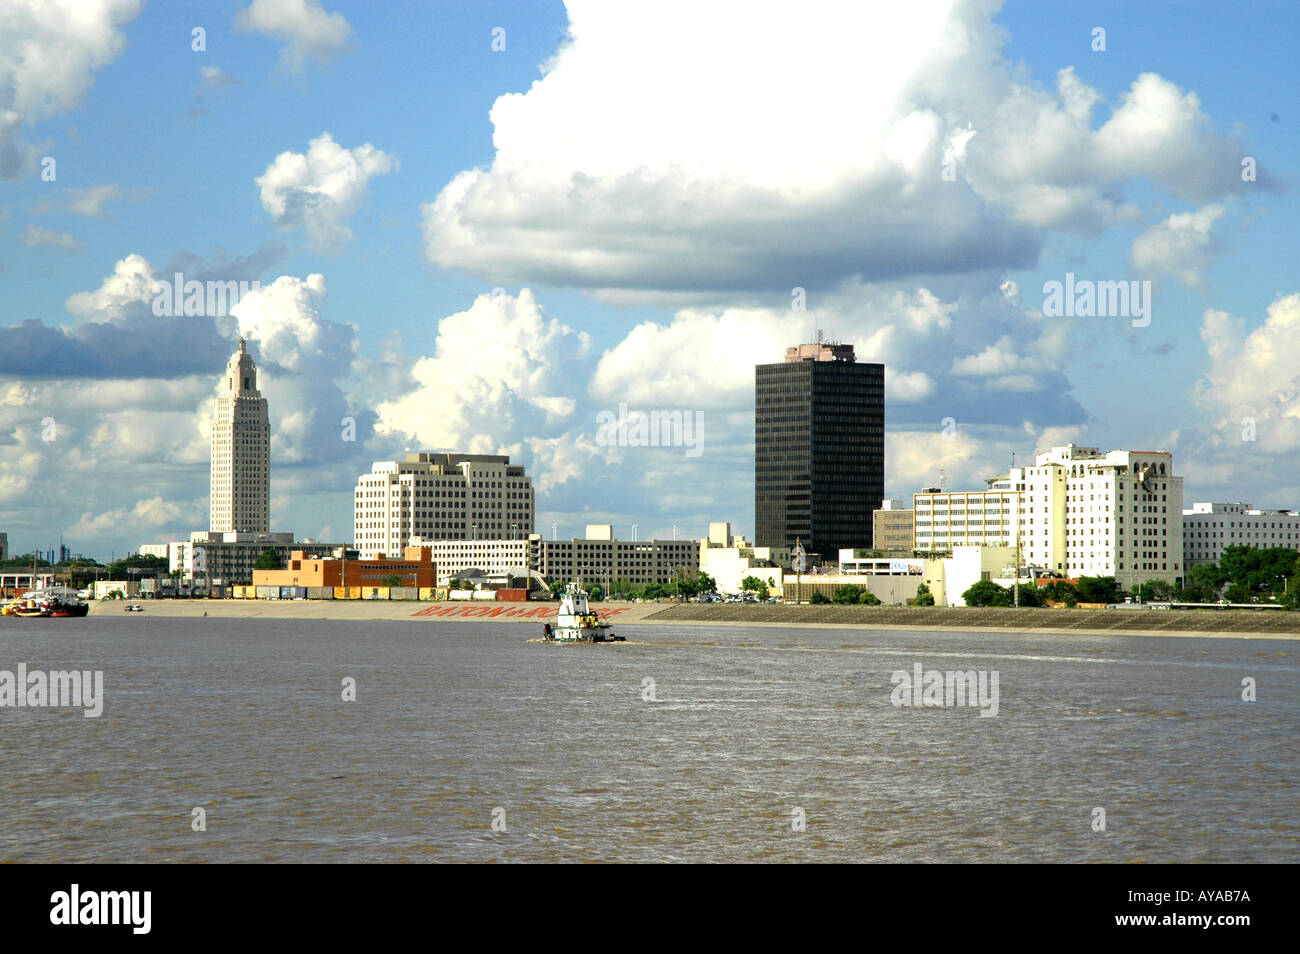 Baton Rouge LA Louisiana Skyline as seen from Mississippi River - Stock Image